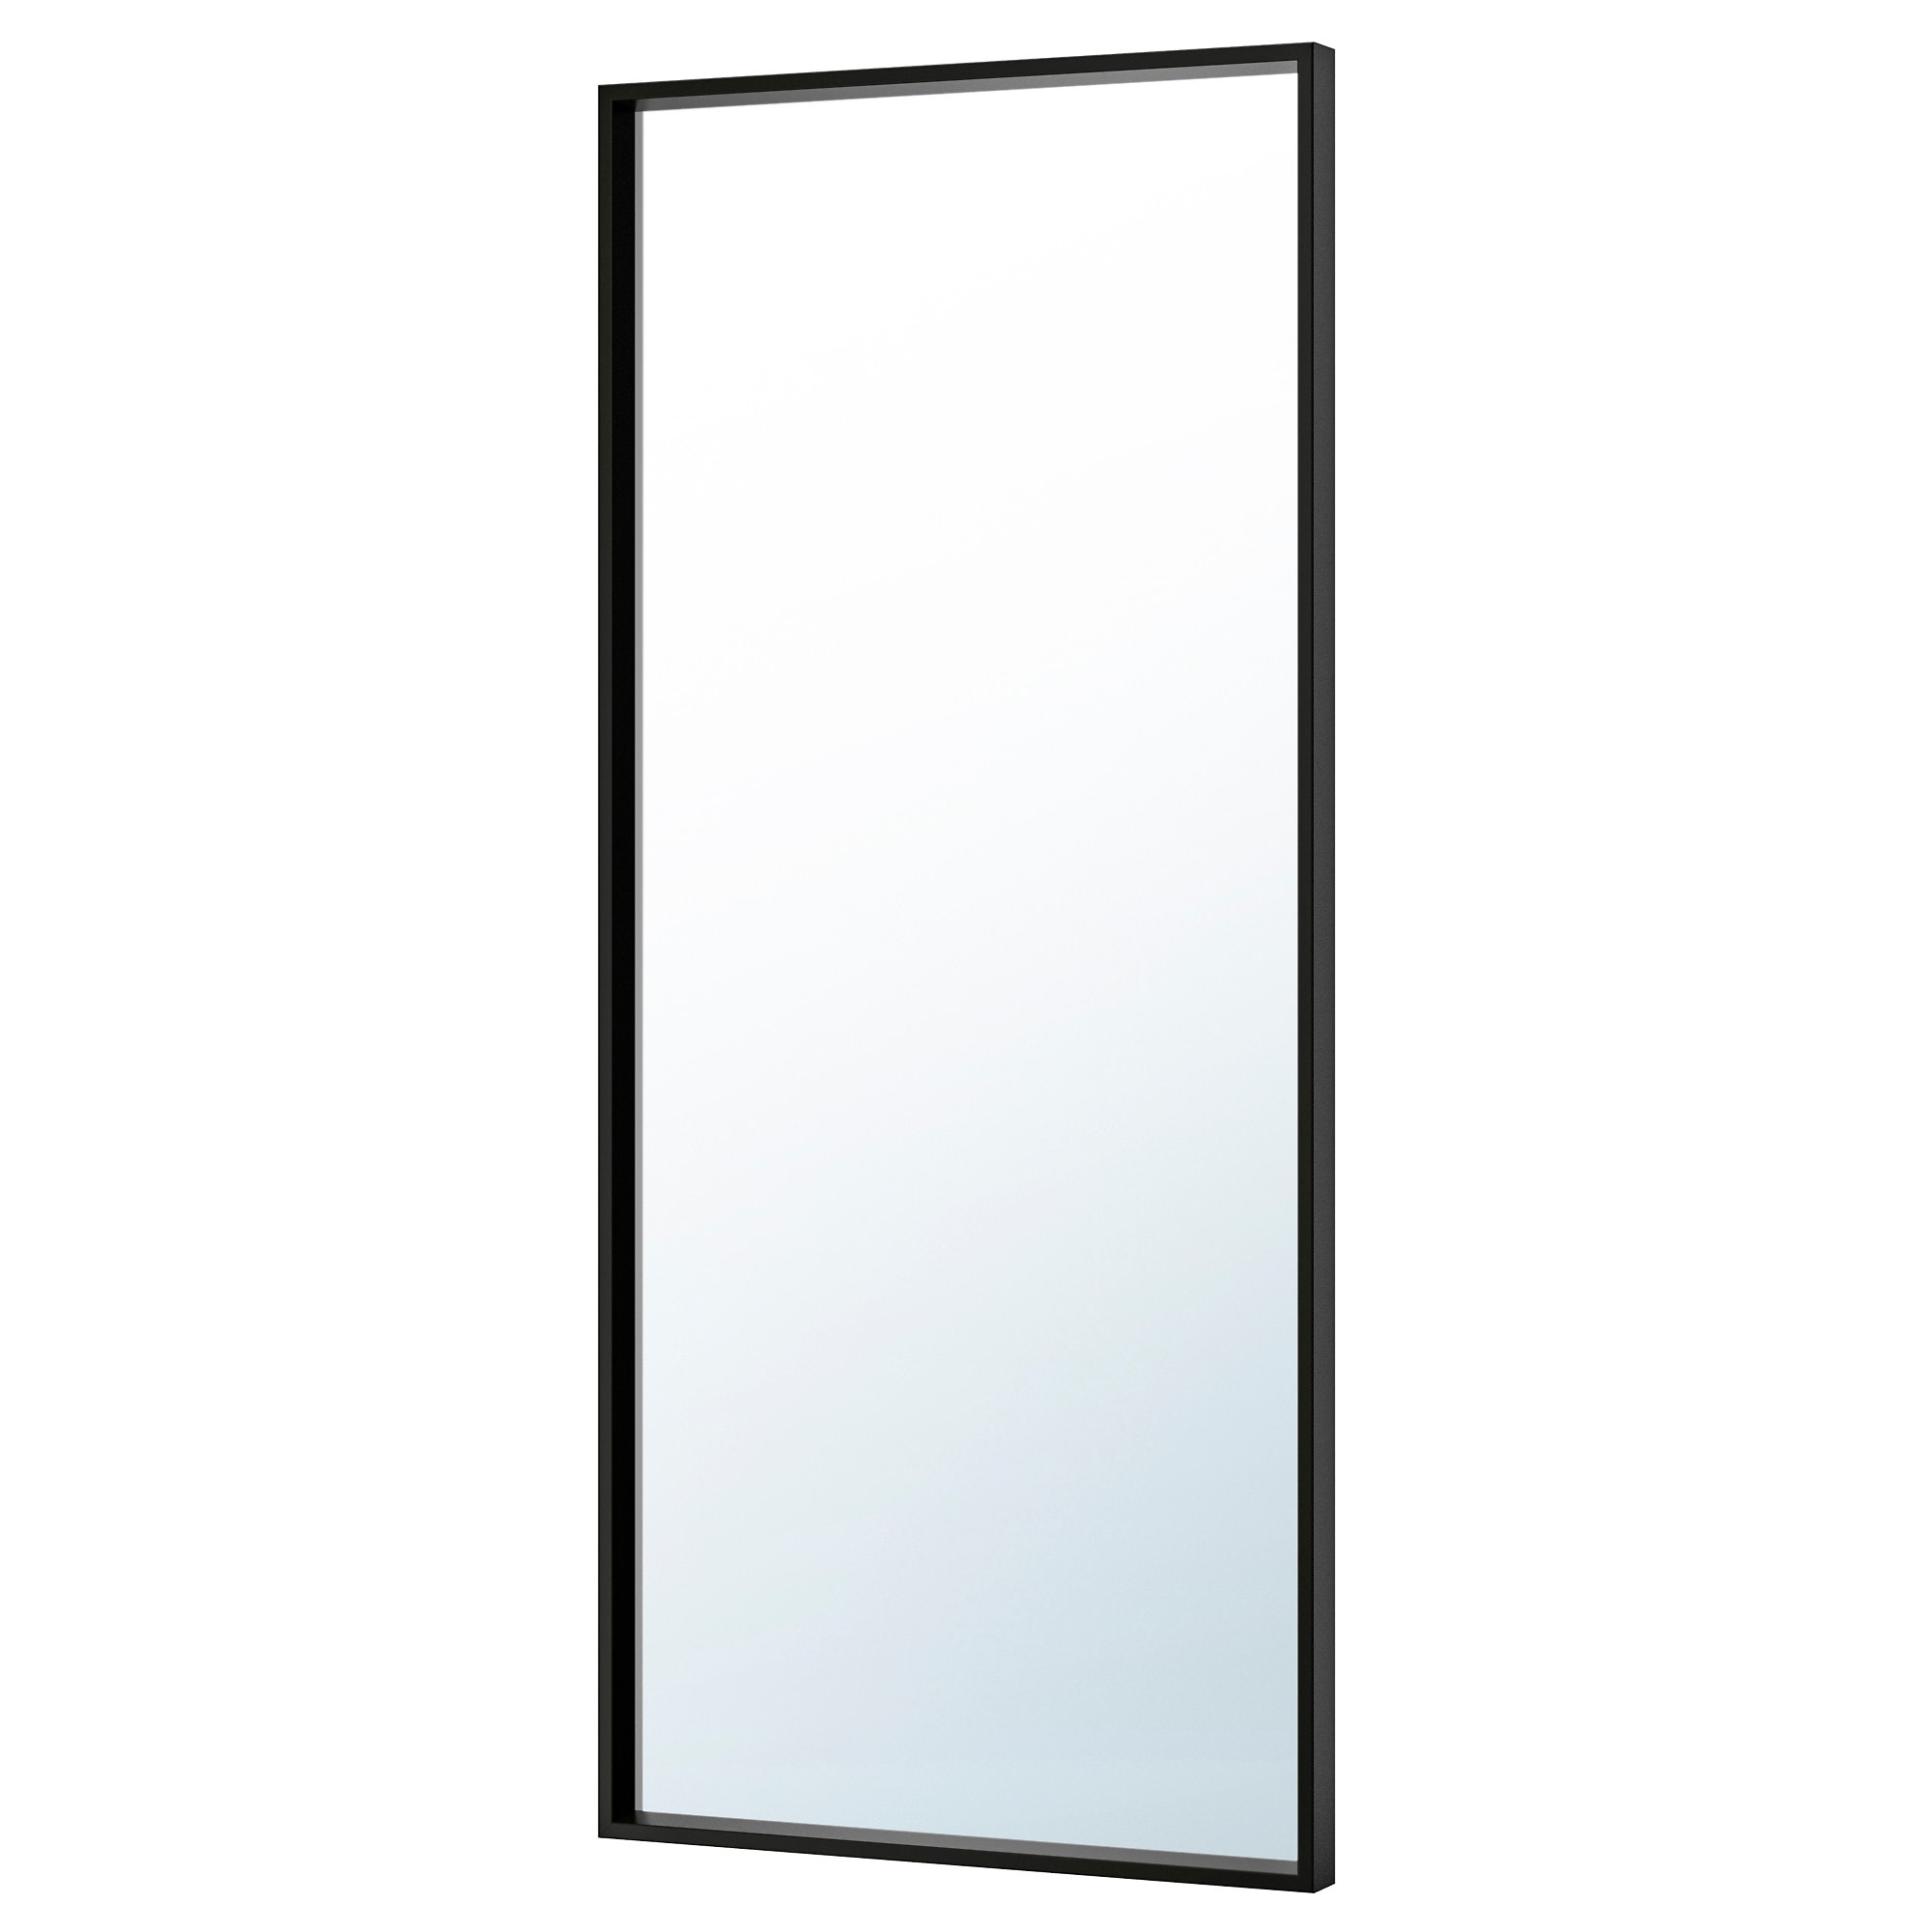 Mirrors ikea nissedal mirror black width 25 58 height 59 width amipublicfo Choice Image